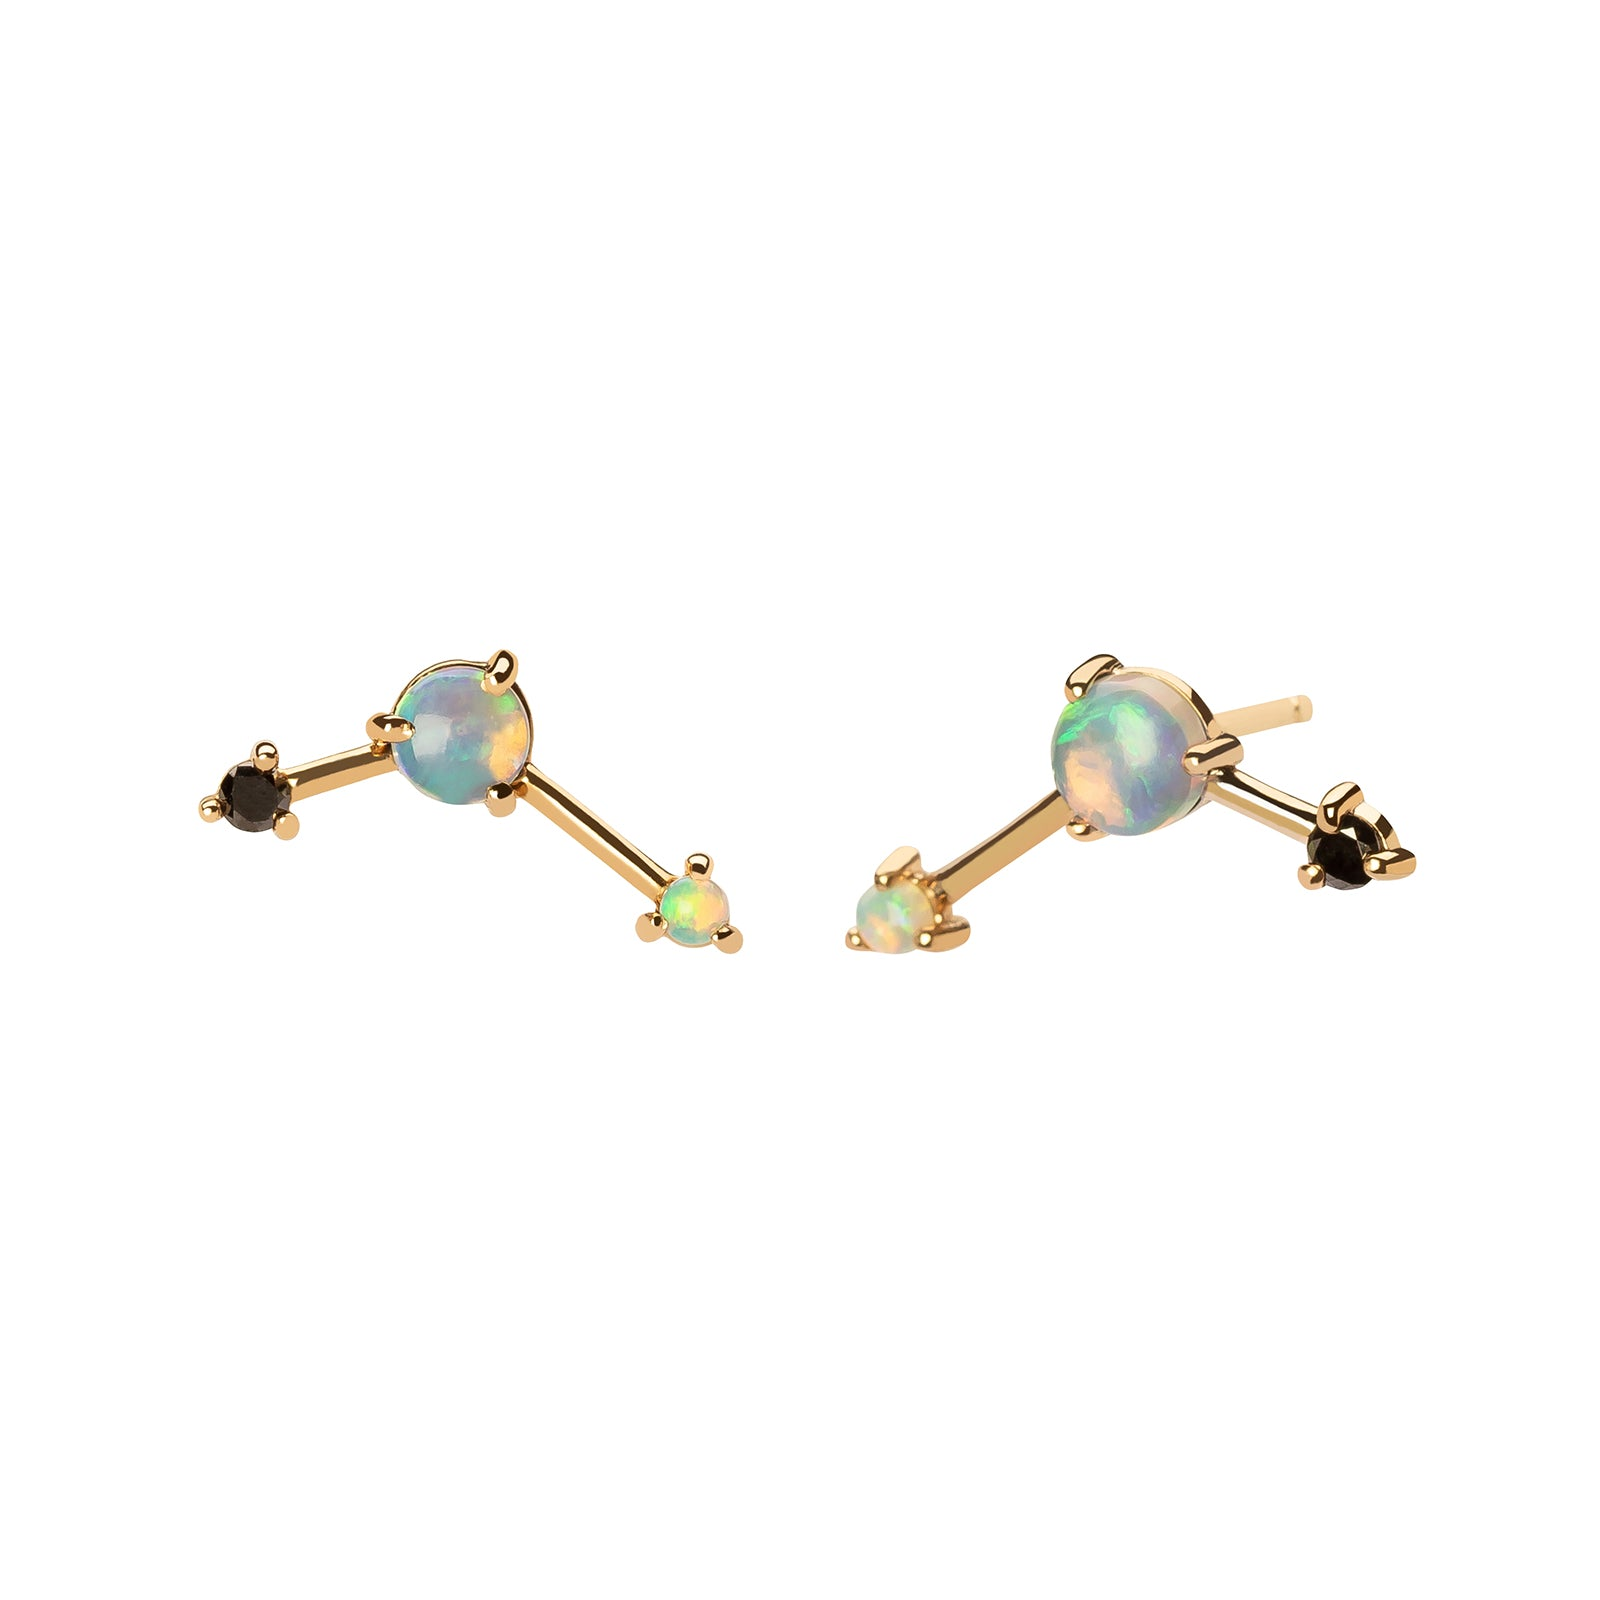 WWAKE Three-Step Balloon Earring - Opal - Earrings - Broken English Jewelry